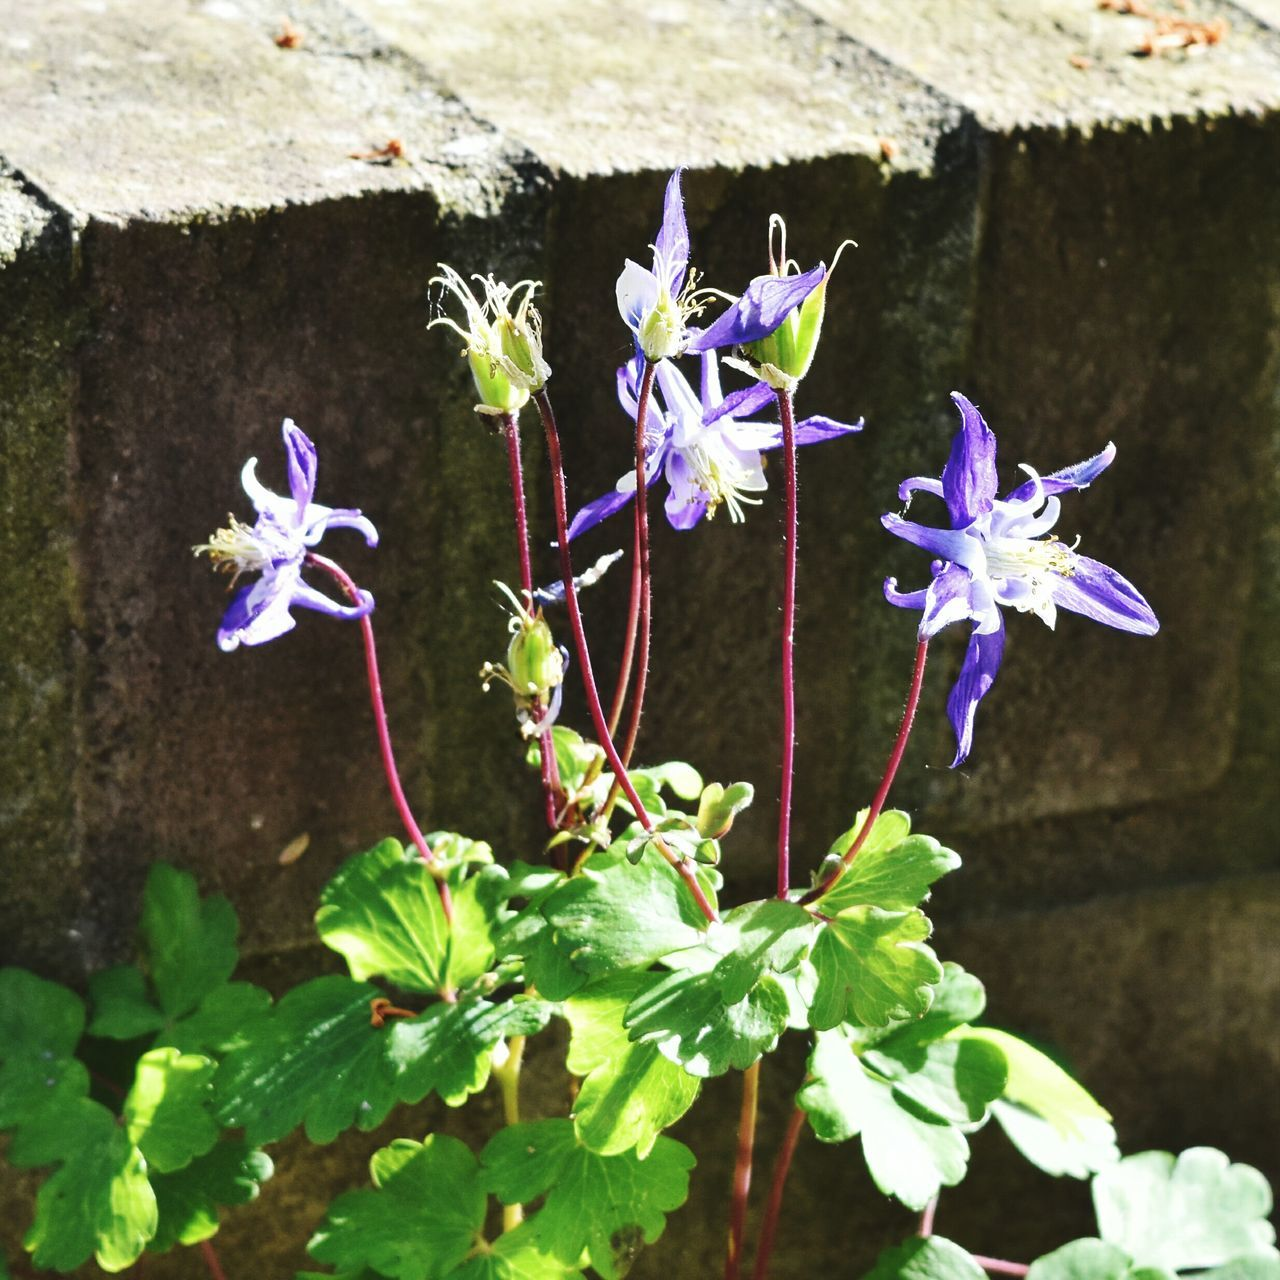 Aquilegia Spring Flowers Wild Flowers Outdoors Day Beauty In Nature Freshness Close-up Brick Wall Blue Flowers